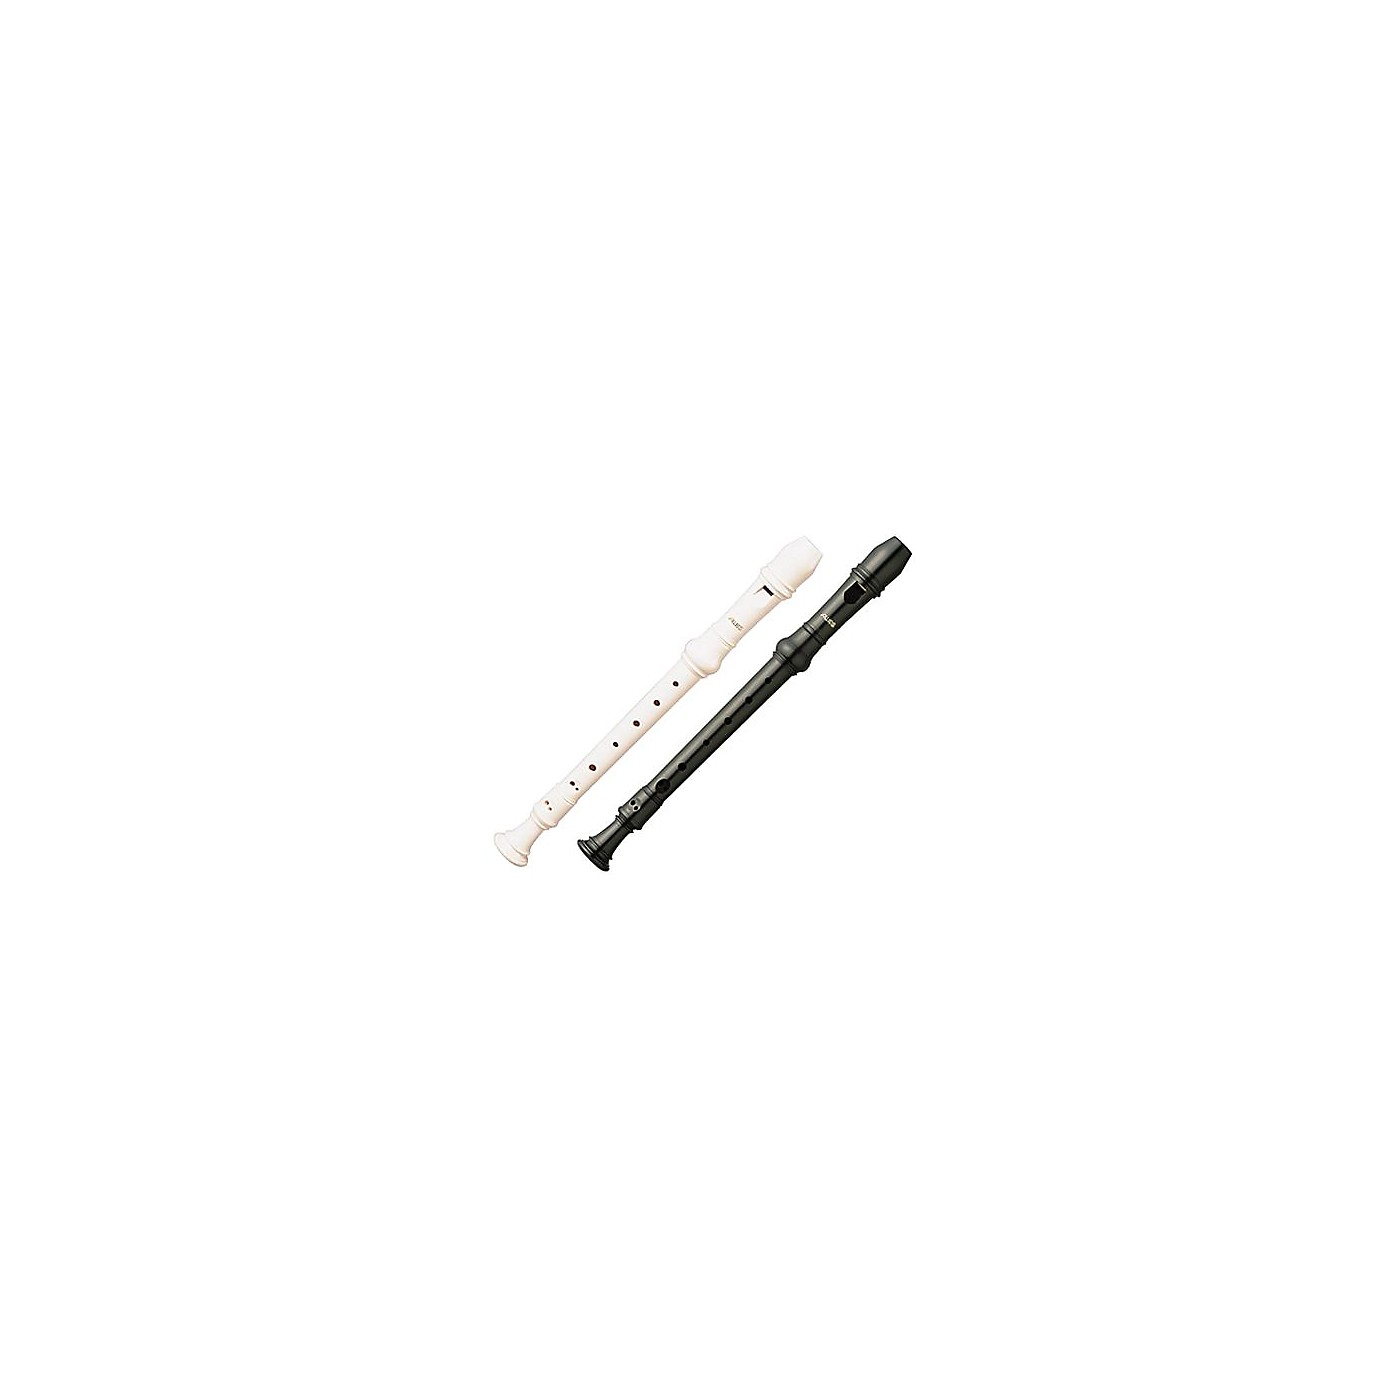 Aulos A303A 3-Piece Soprano Recorder with Baroque Fingering thumbnail